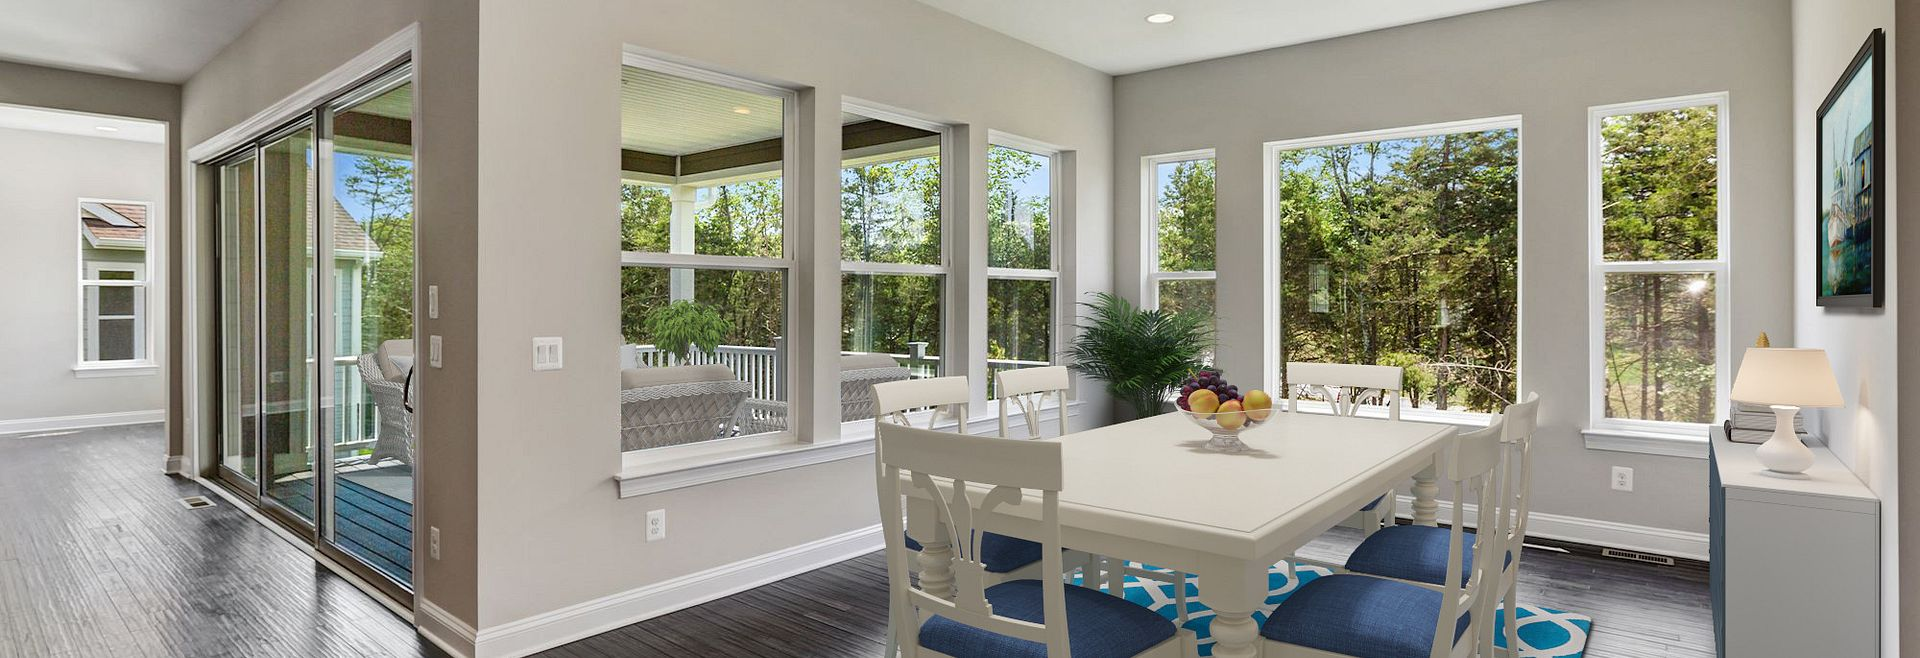 Trilogy at Lake Frederick Quick move In home Hensely Plan Virtually Staged  Dining Room